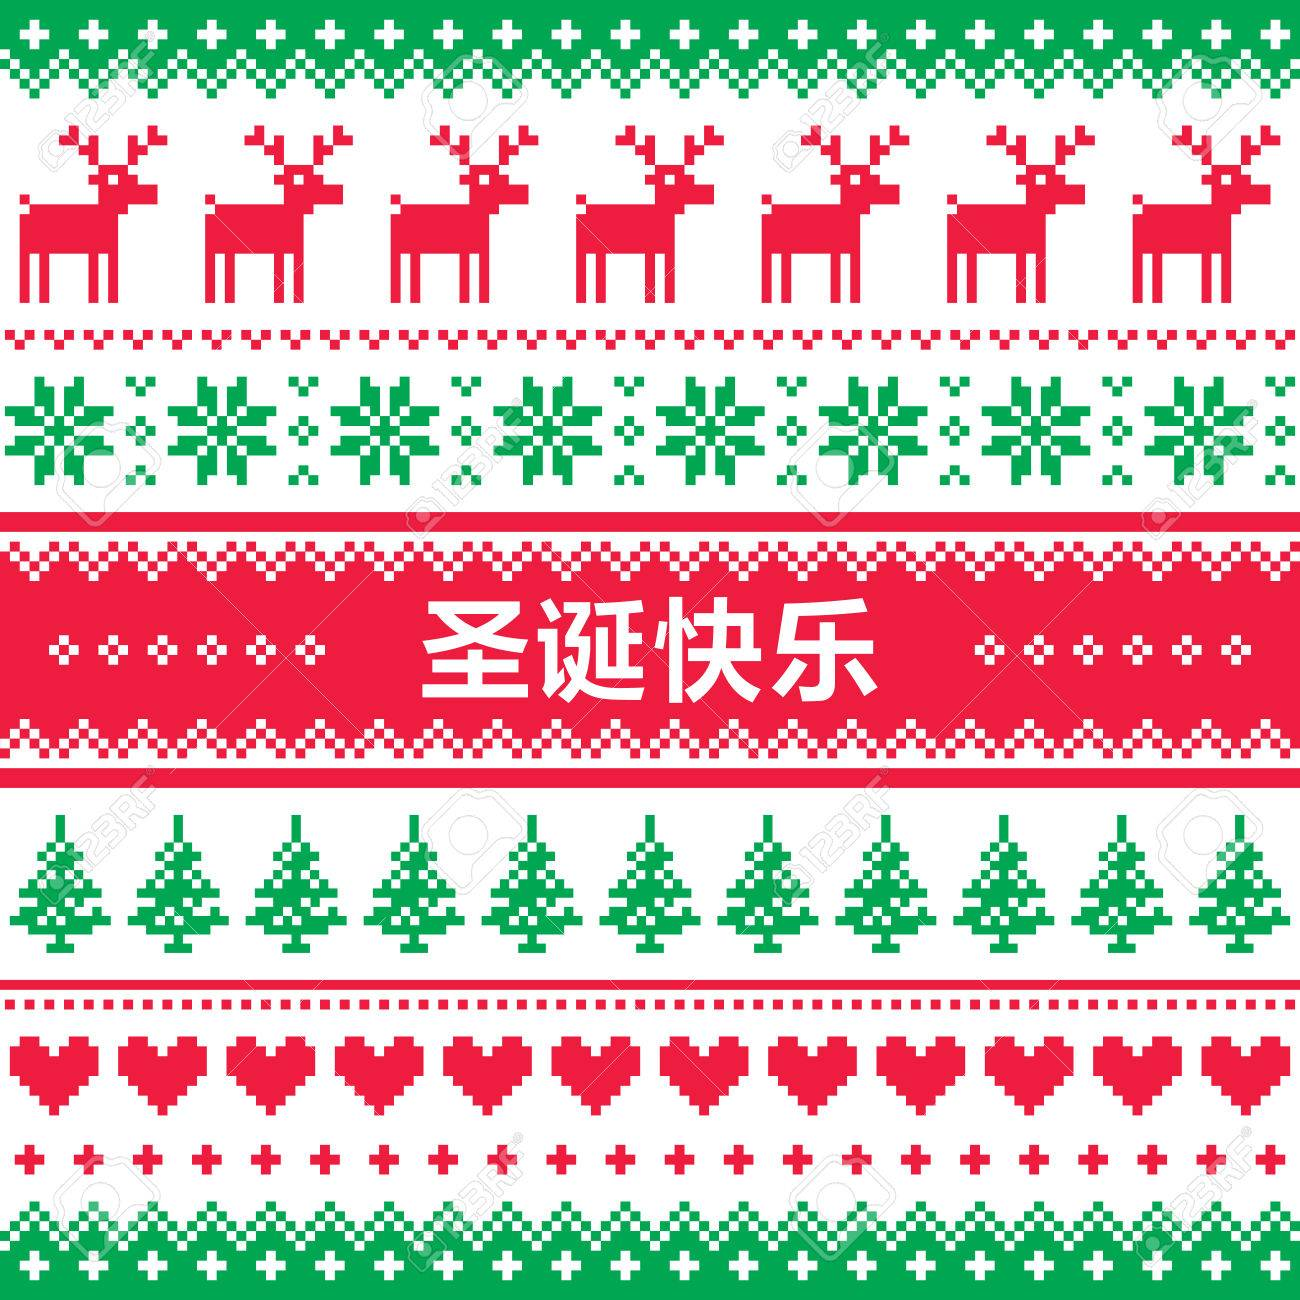 Merry christmas in chinese mandarin pattern greetings card royalty merry christmas in chinese mandarin pattern greetings card stock vector 56911062 m4hsunfo Images